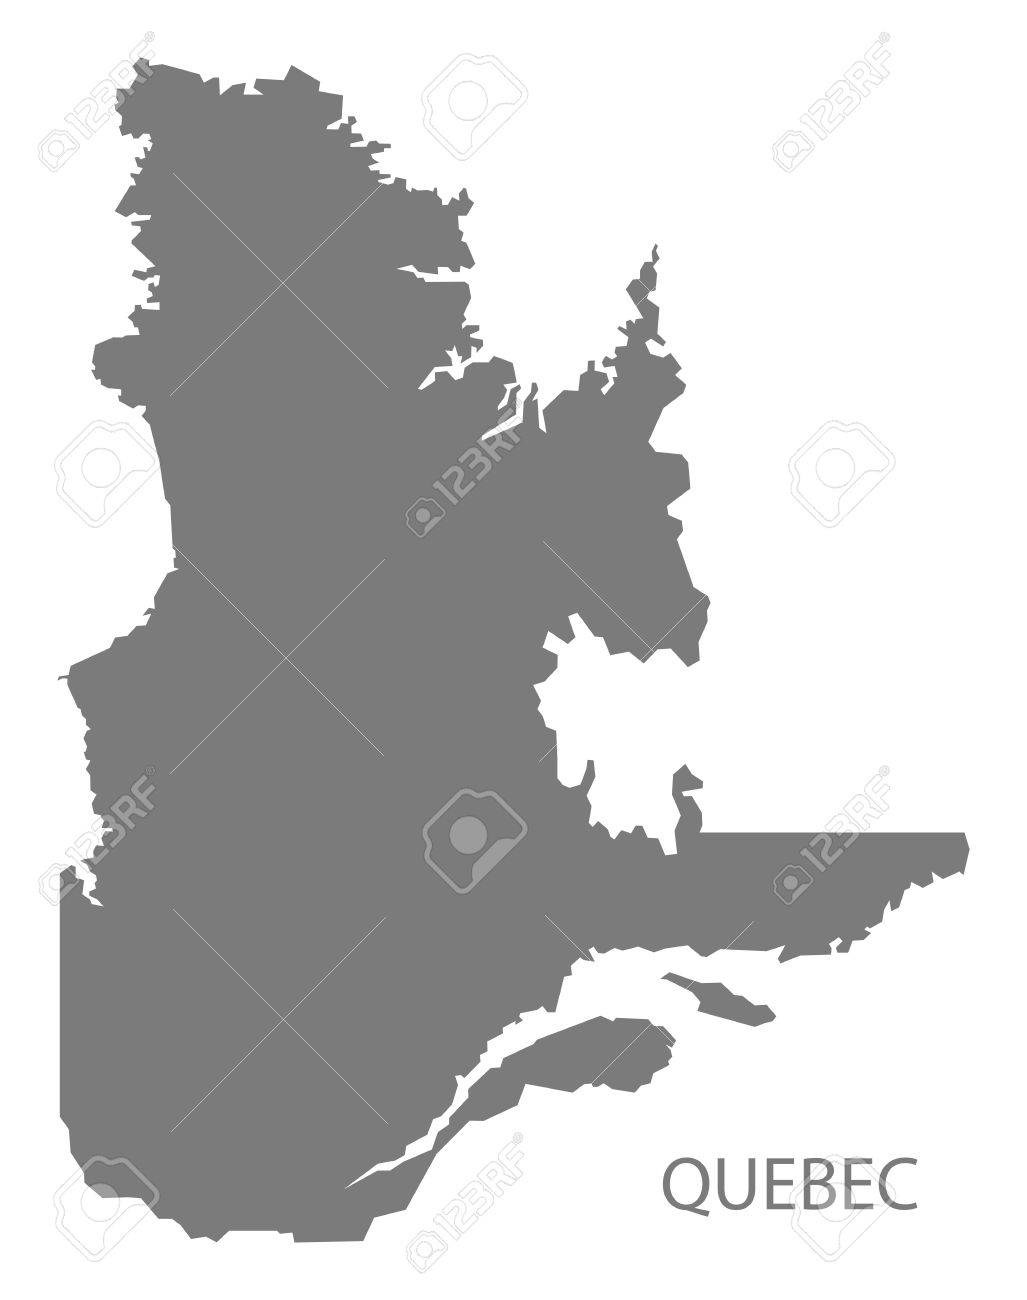 quebec canada map in grey royalty free cliparts vectors and